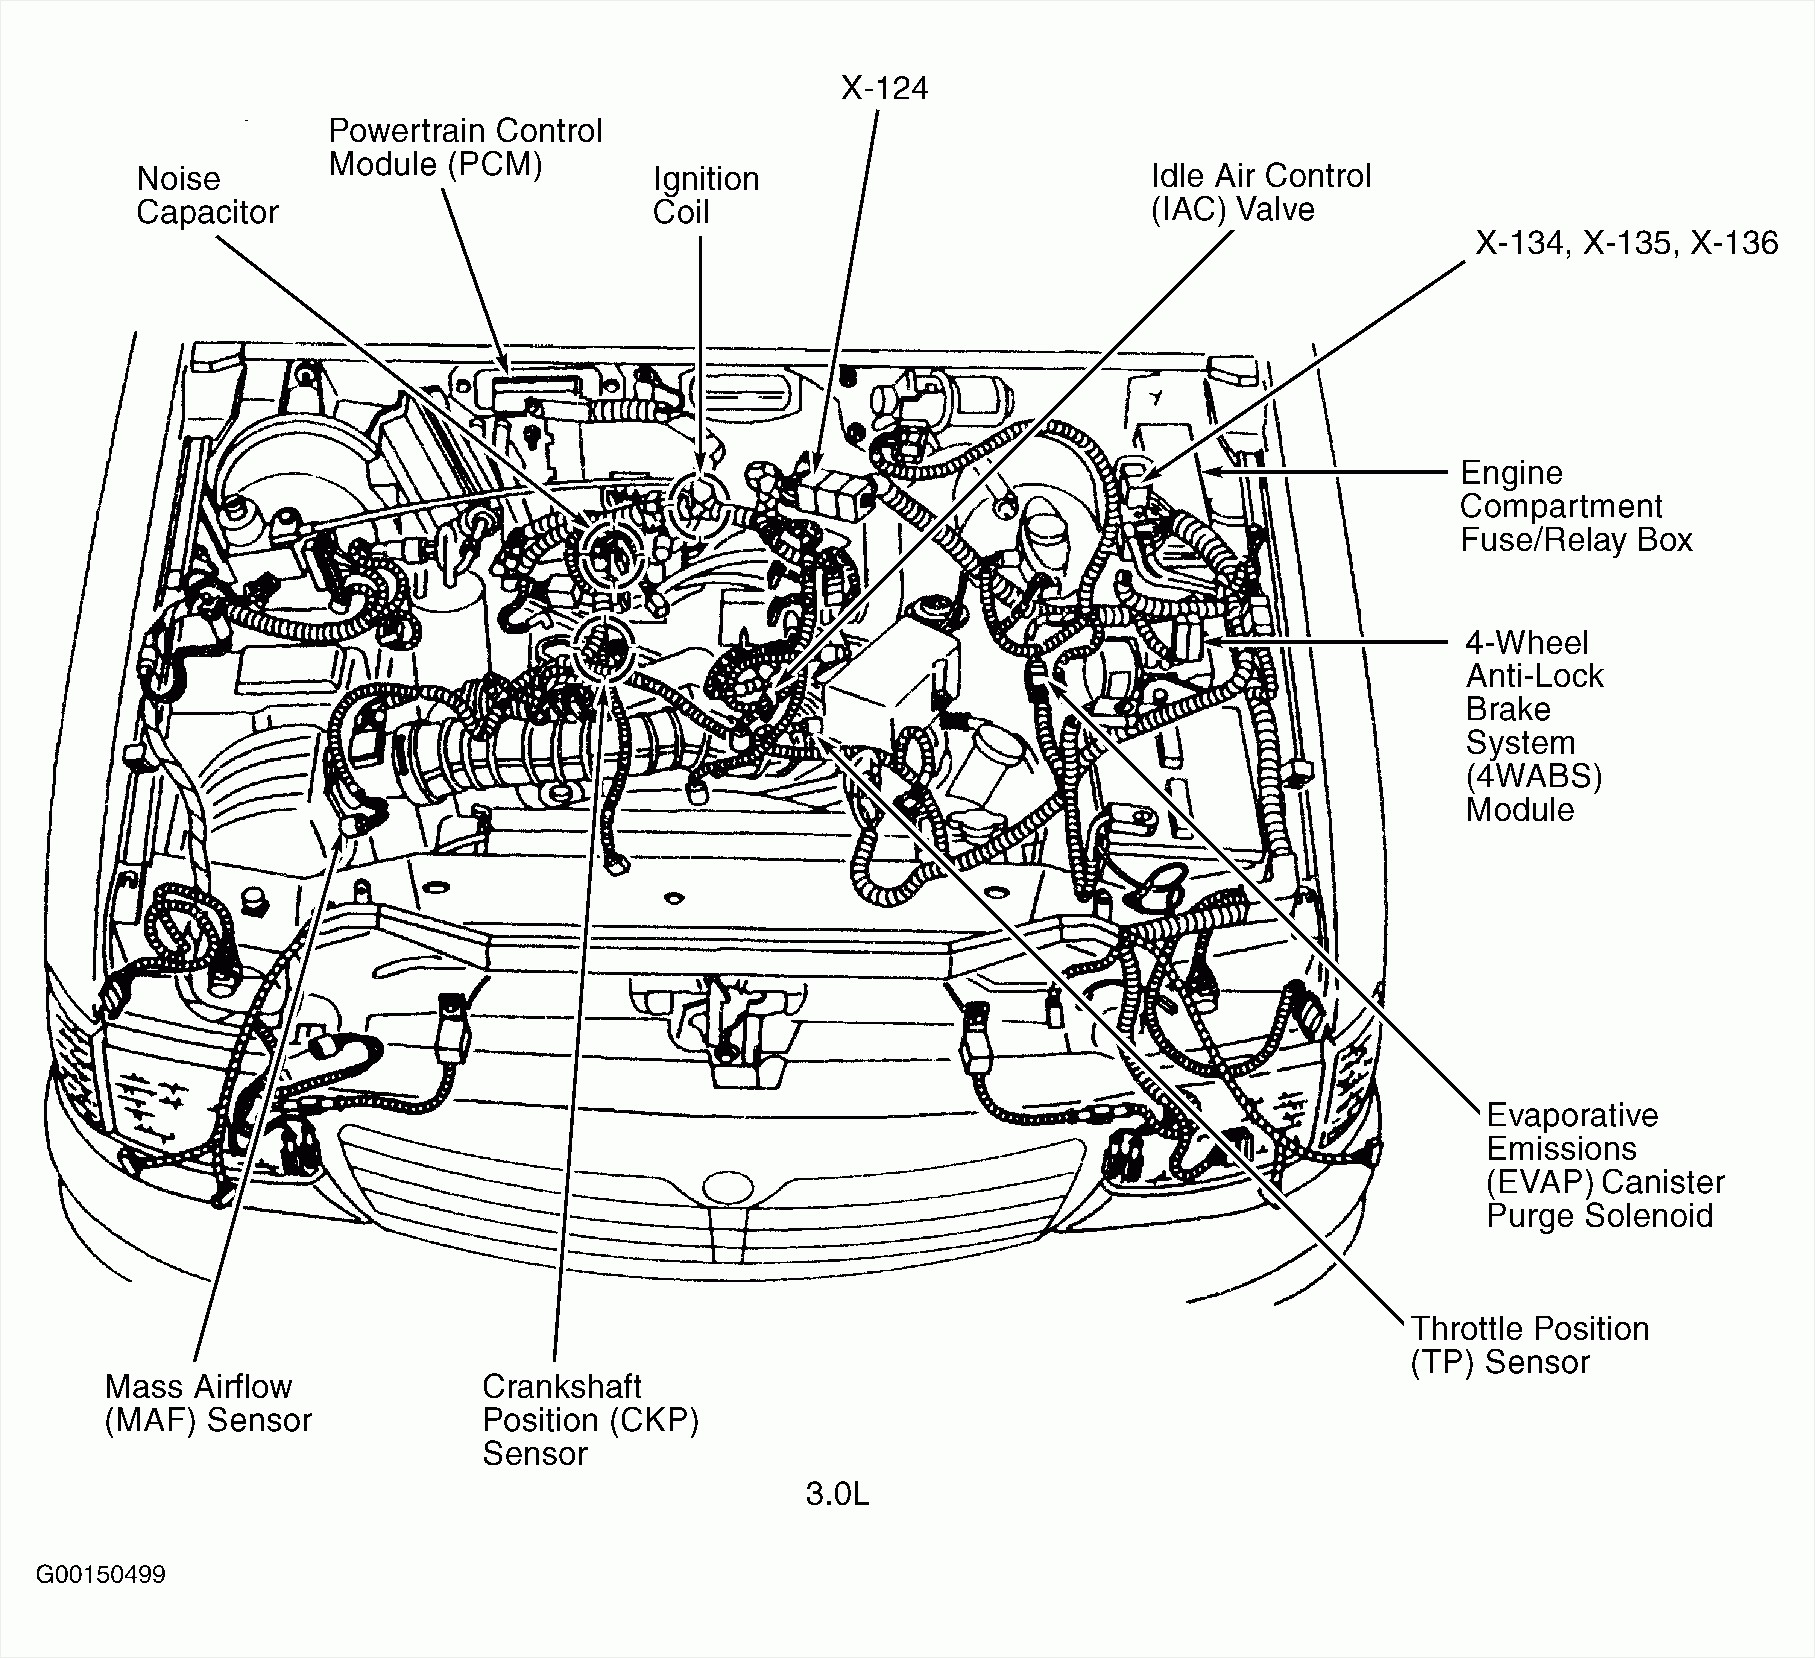 ford 3 8 v6 engine diagram wiring diagram explained ford 4.0 v6 engine diagram 3 8l v6 engine diagram data wiring diagram today 2000 ford 3 8 engine diagram ford 3 8 v6 engine diagram